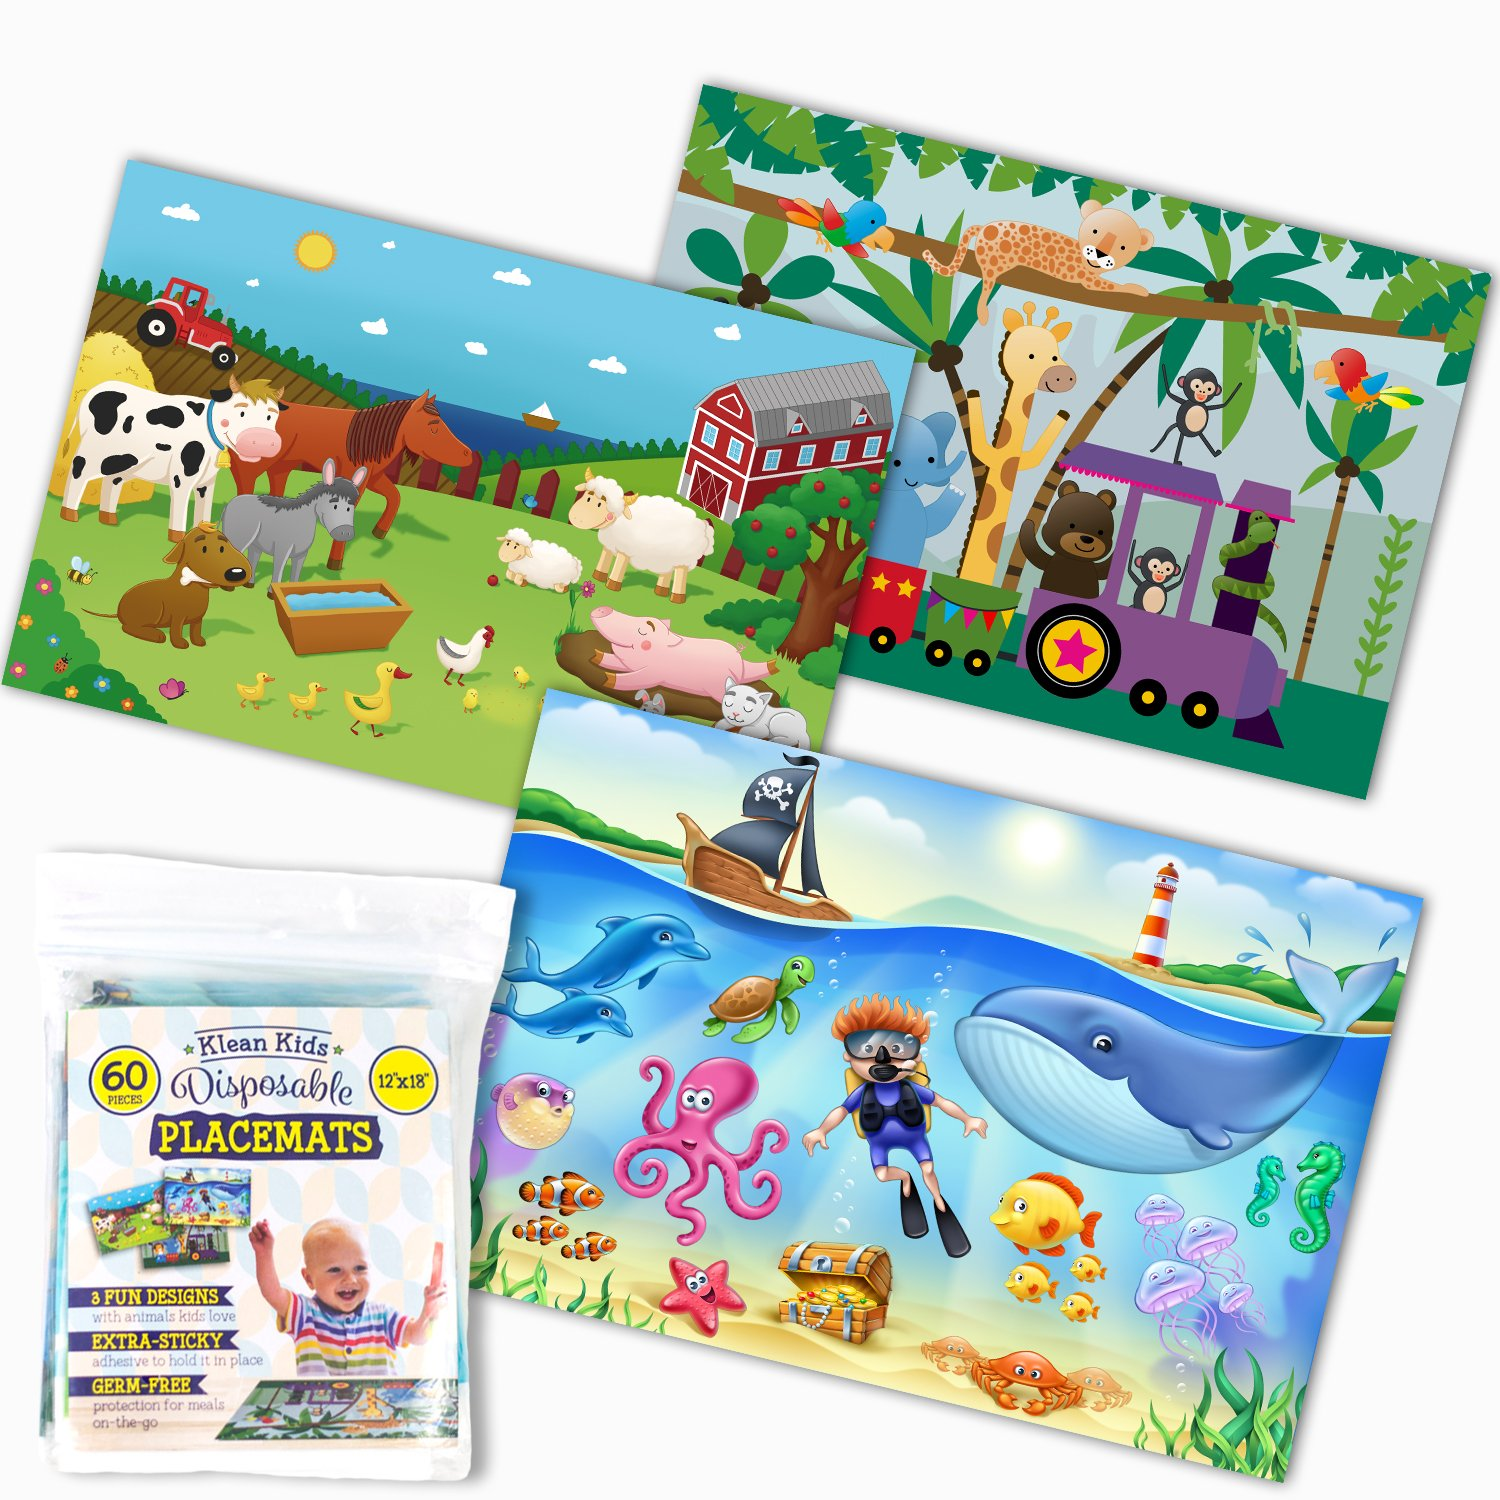 Klean Kids Disposable Placemats for Baby and Kid's Table - Farm, Sea Life, Zoo Train Animals - Sticky Topper - 60 Pack in 3 Designs by HomeWorthy